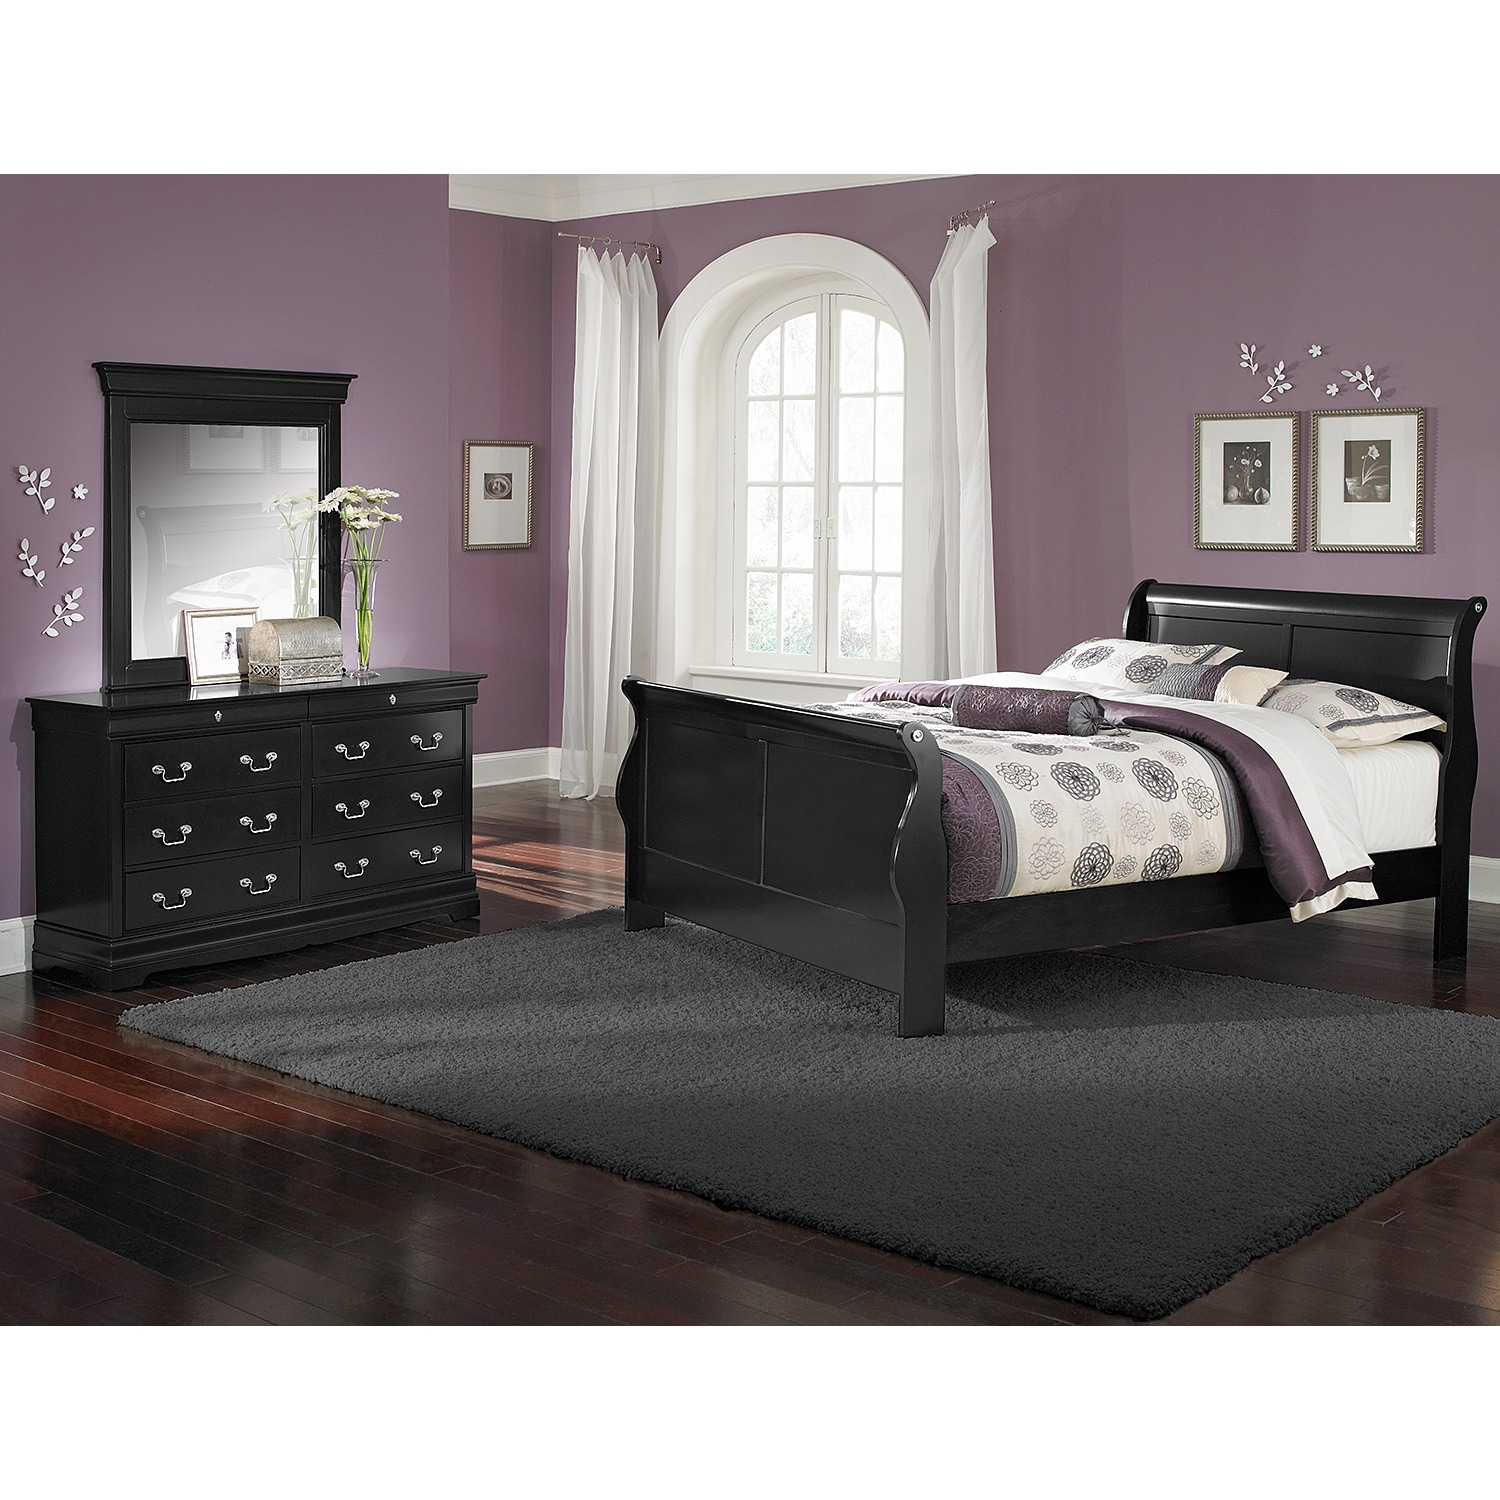 neo classic youth 5 piece full bedroom set black value great ideas of black bedroom furniture agsaustin org set